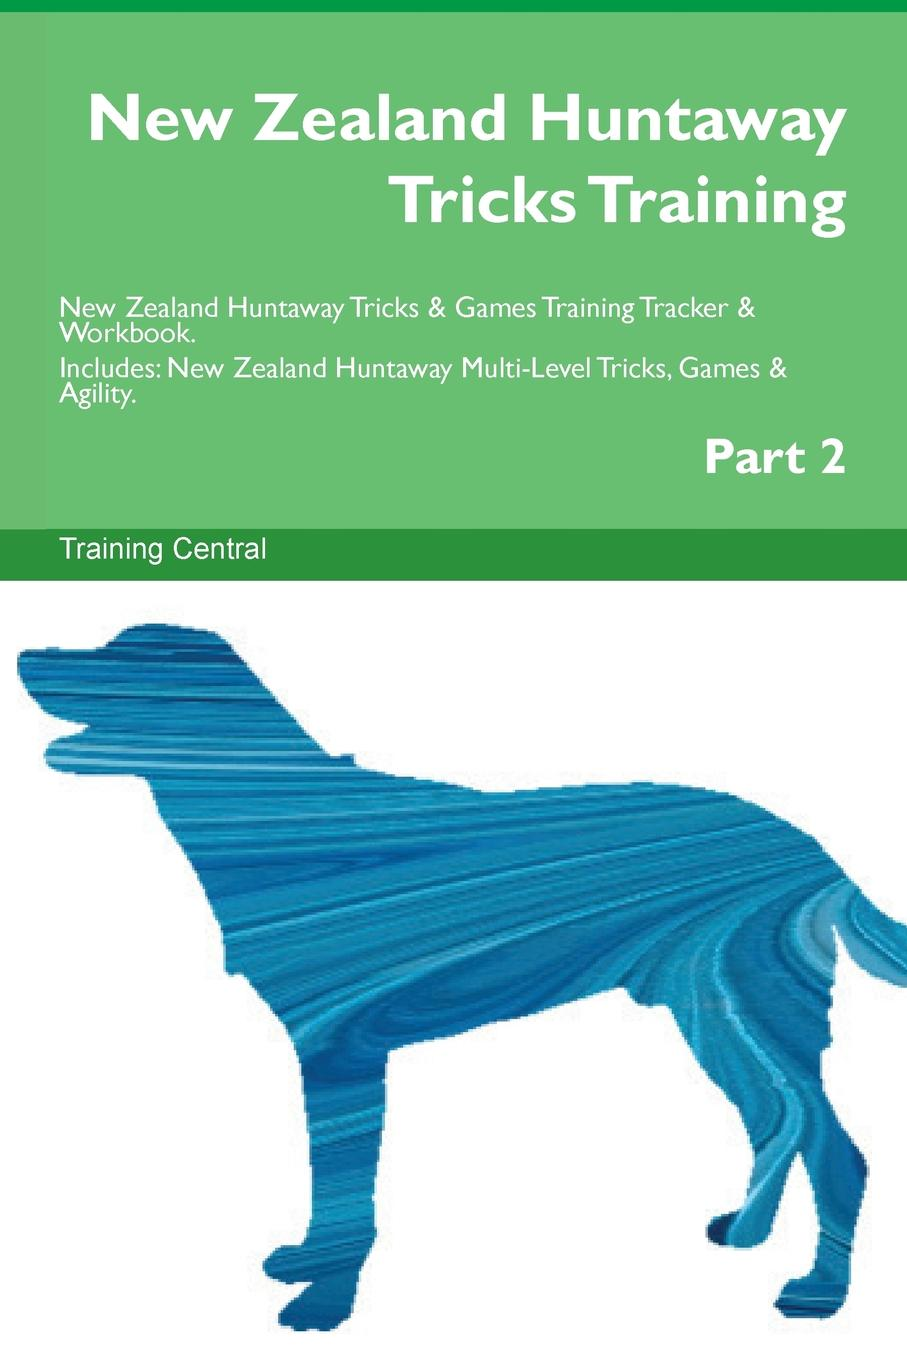 Training Central New Zealand Huntaway Tricks Training New Zealand Huntaway Tricks . Games Training Tracker . Workbook. Includes. New Zealand Huntaway Multi-Level Tricks, Games . Agility. Part 2 2019 icc cricket world cup india v new zealand